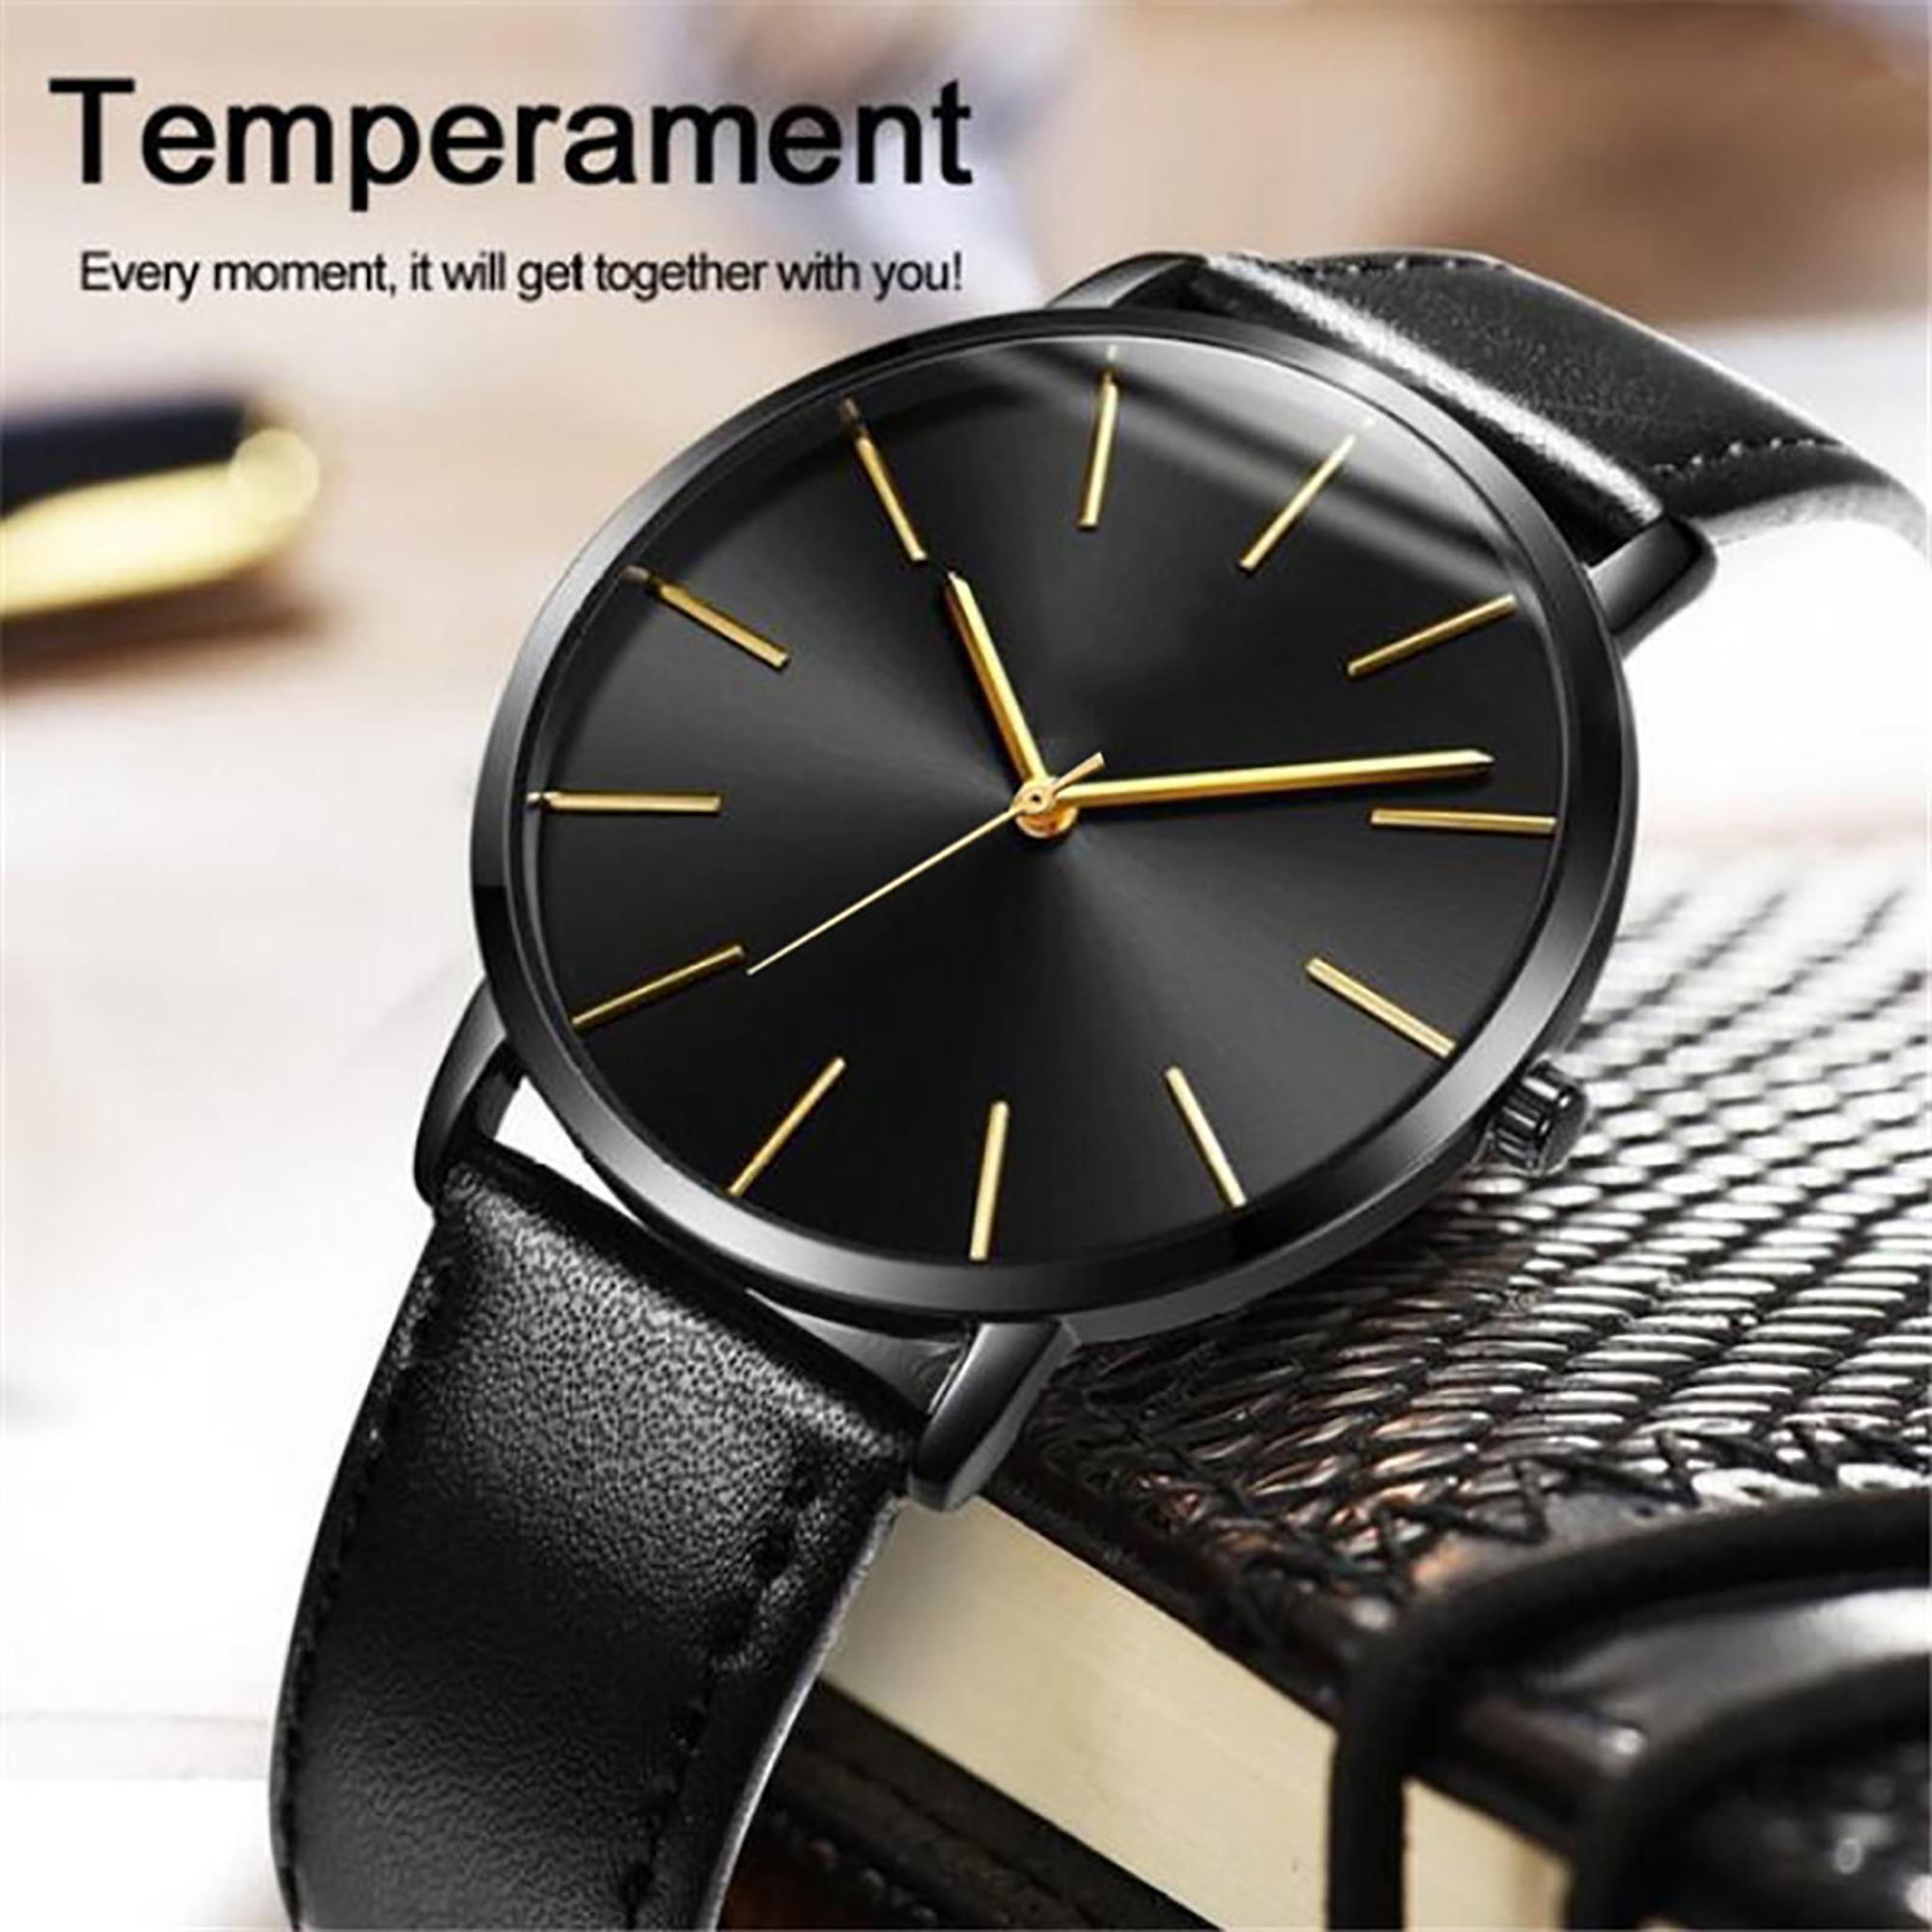 e92cfb6351a1 TNK Monterey 1 (FREE BOX) Relogio Masculino Mens Watches Top Brand Luxury  Ultra-thin Wrist Watch Men Watch Men s Watch Clock erkek kol saati reloj  hombre ...